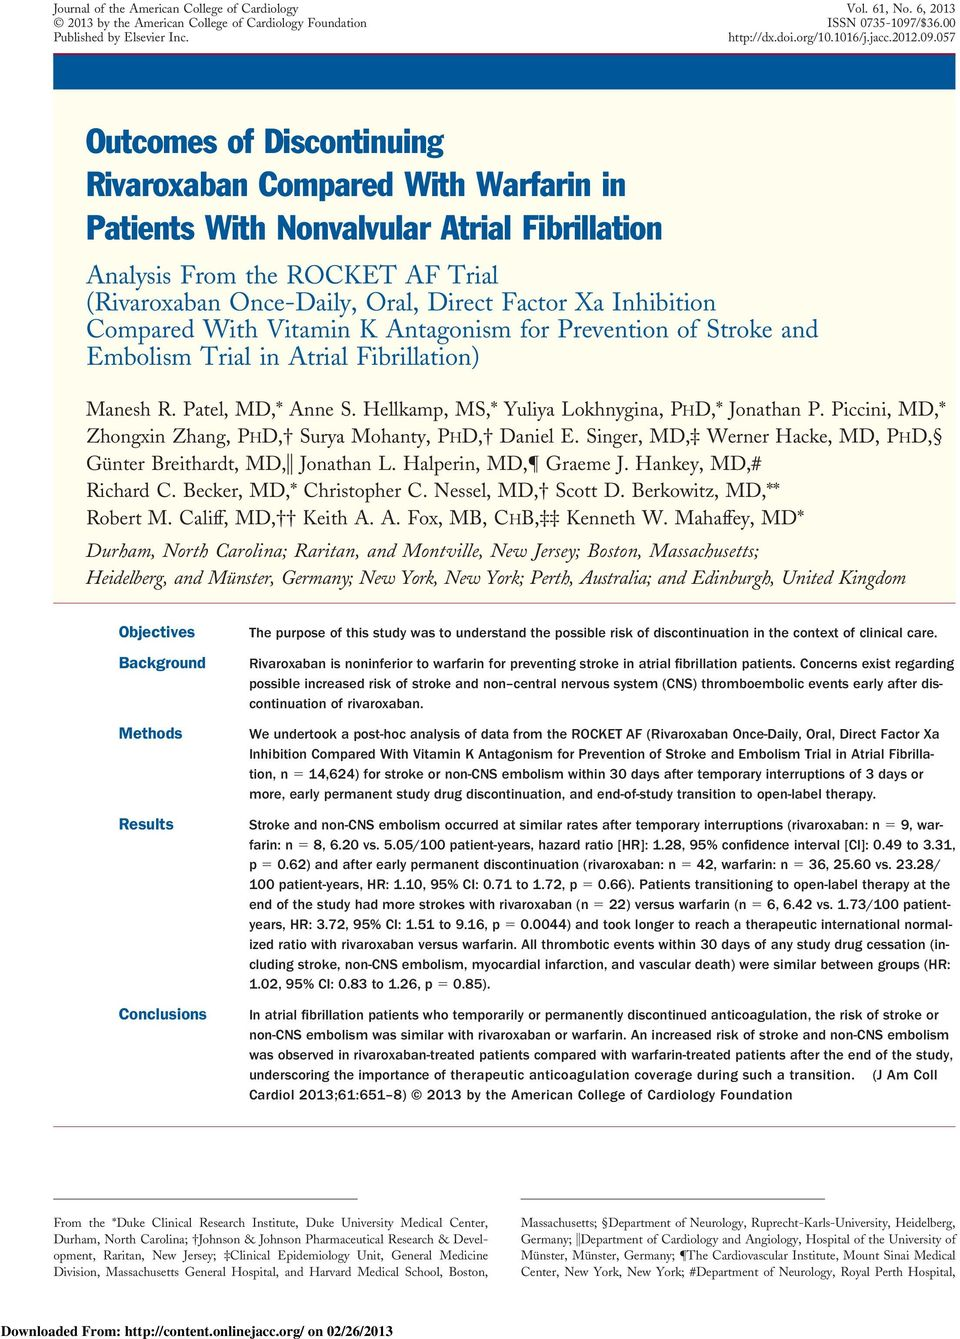 057 Outcomes of Discontinuing Compared With in Patients With Nonvalvular Atrial Fibrillation Analysis From the ROCKET AF Trial ( Once-Daily, Oral, Direct Factor Xa Inhibition Compared With Vitamin K